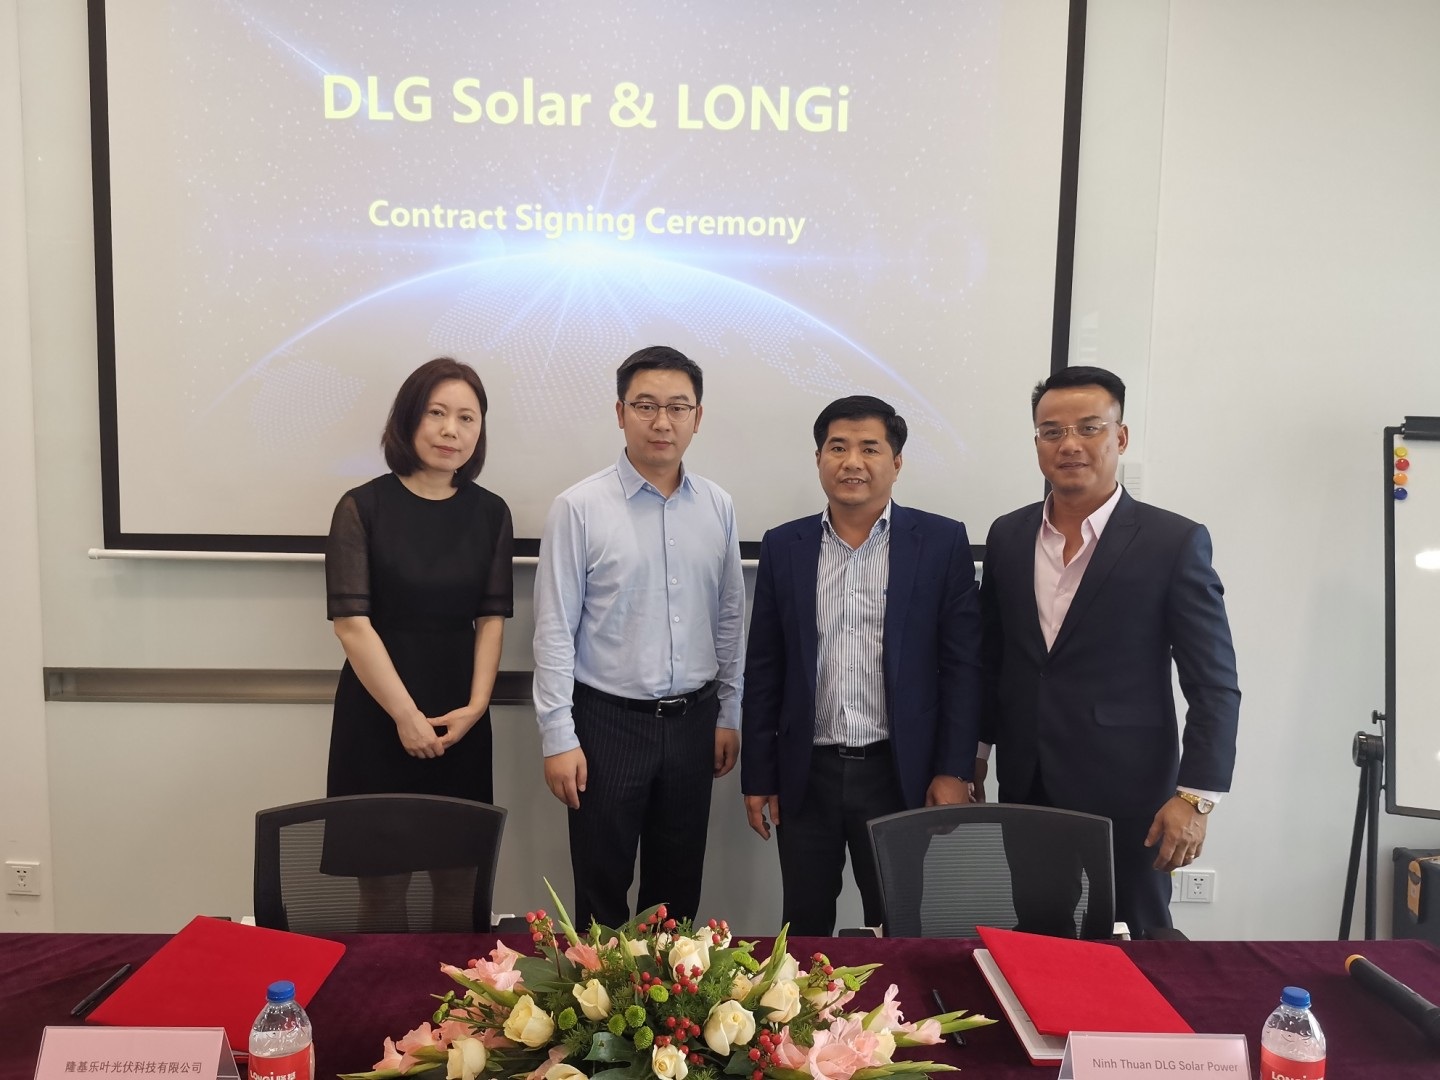 The LONGi-DLG Solar deal concerns the 72-cell HI-MO 4 variant, with each panel designed with a maximum power output of 440W. (Image credit: LONGi Solar)